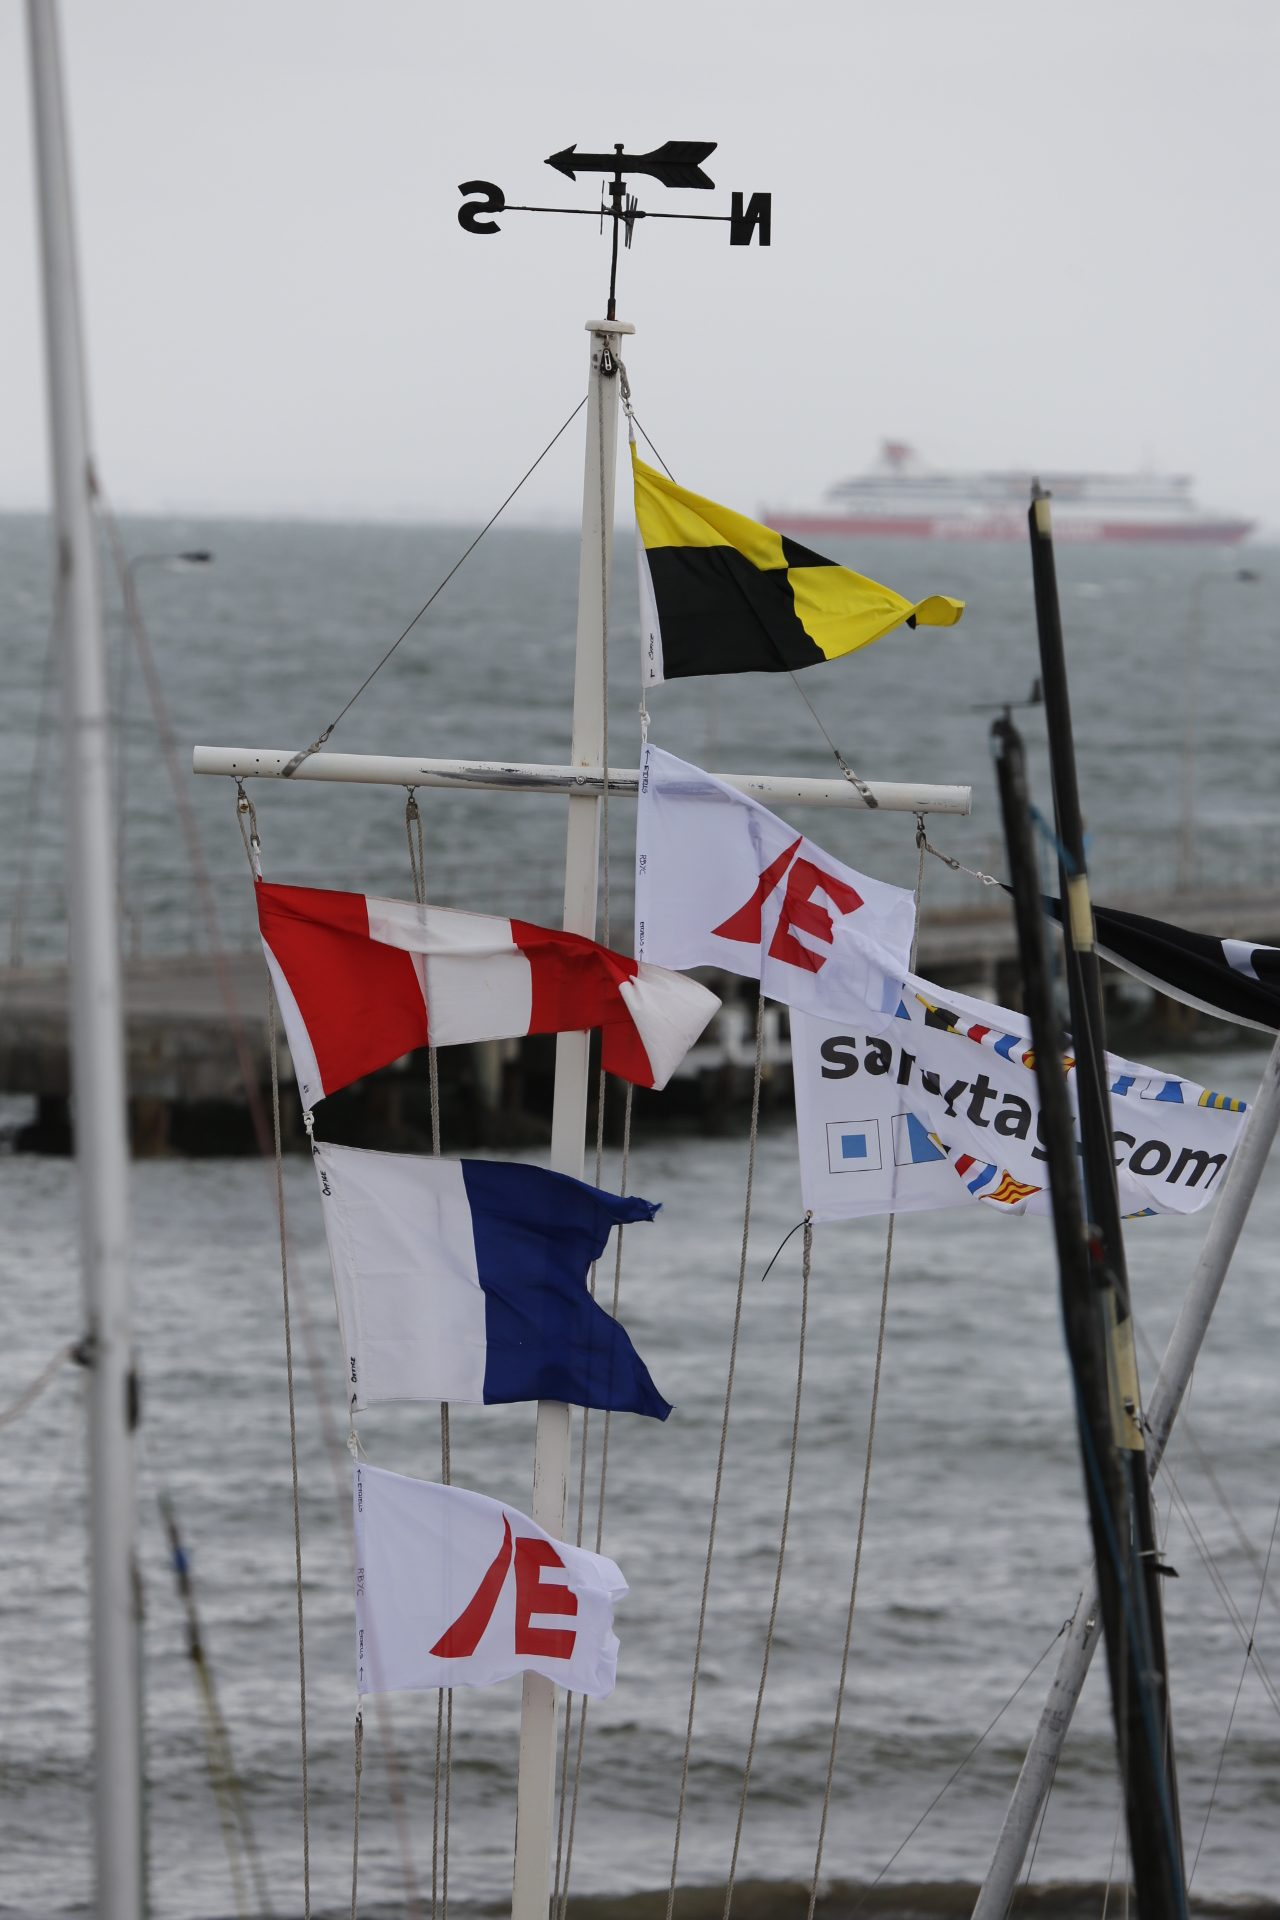 AP over A and sponsor flags fly in the brisk breeze. Image courtesy Kylie Wilson/positiveimage.com.au